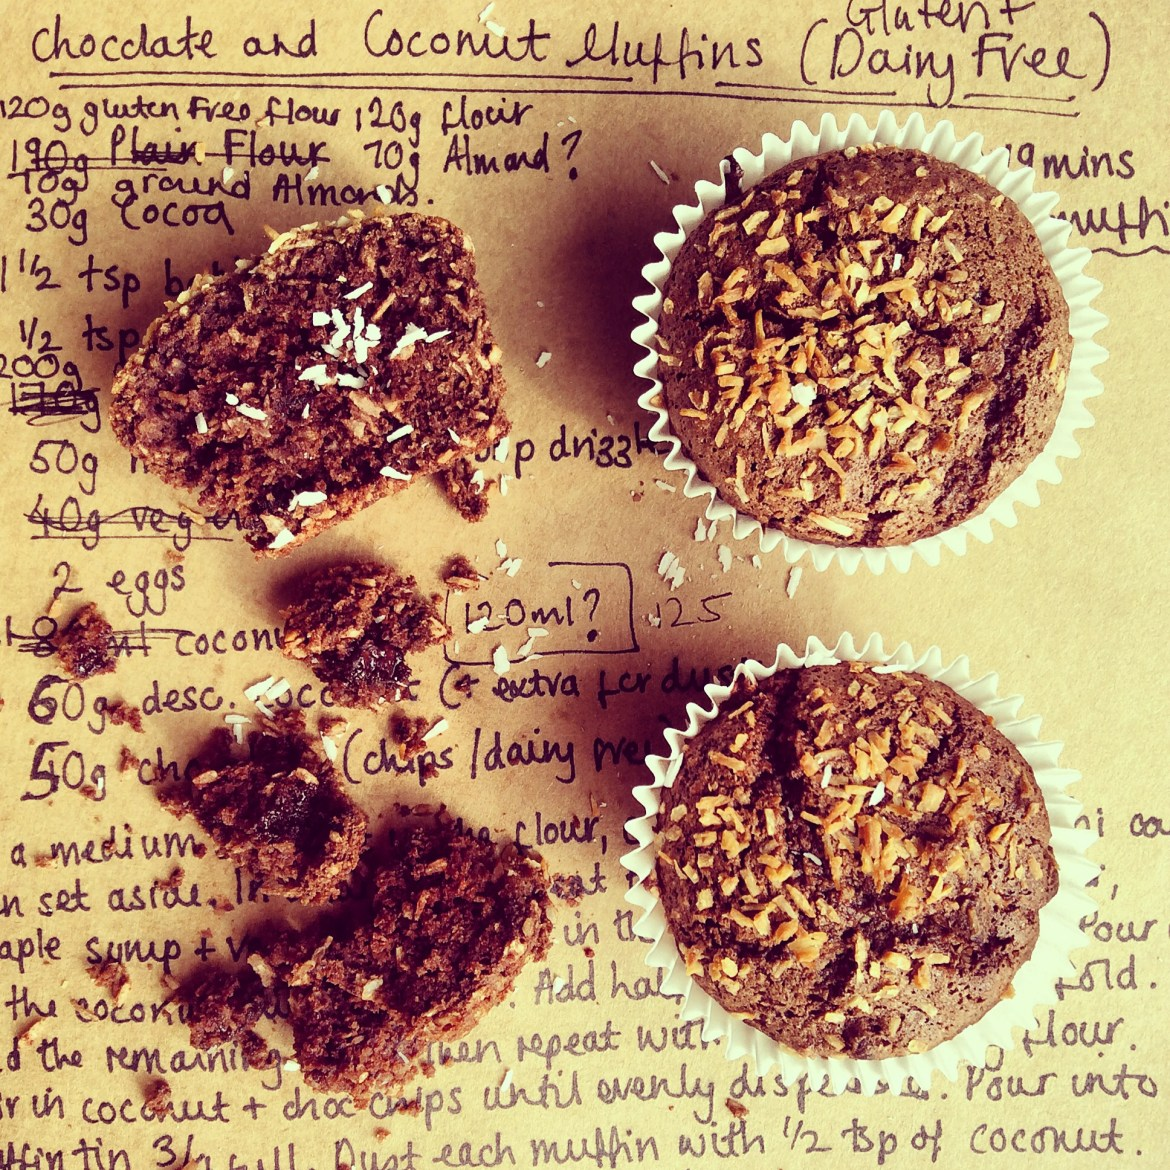 Chocolate and Coconut Muffins